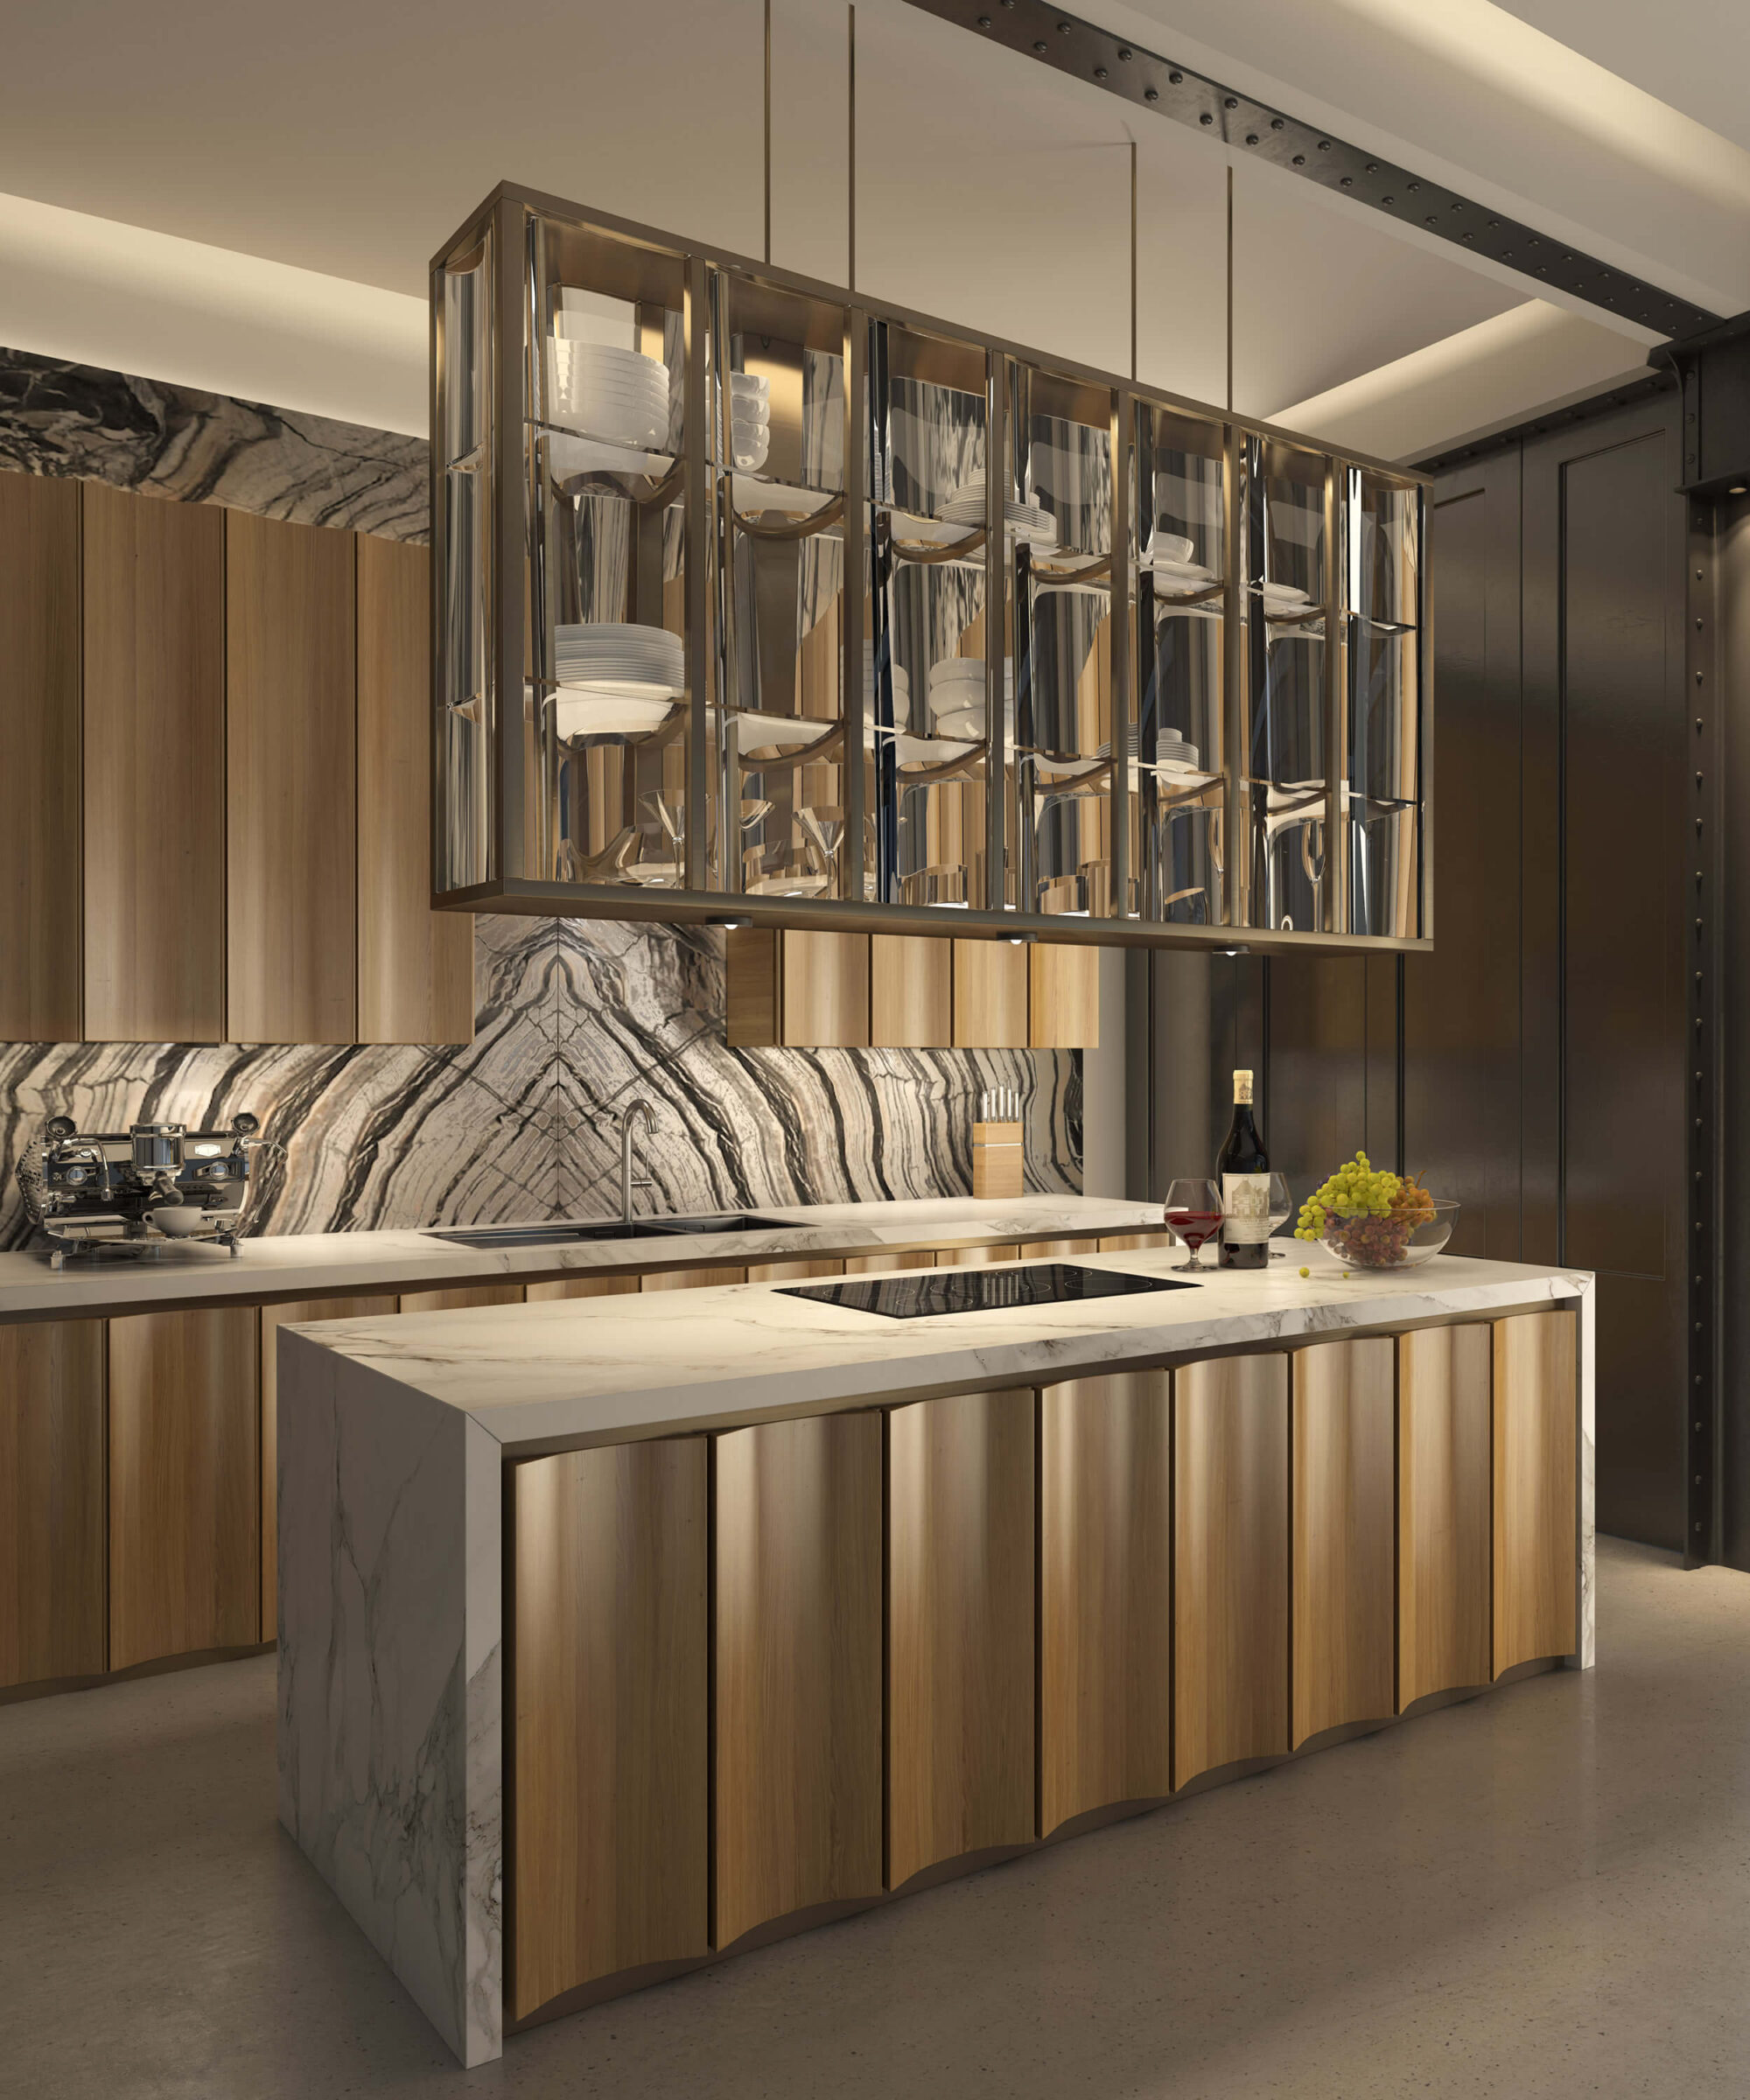 Smallbone's Icarus Kitchen in the new Brompton Gate Showroom, London